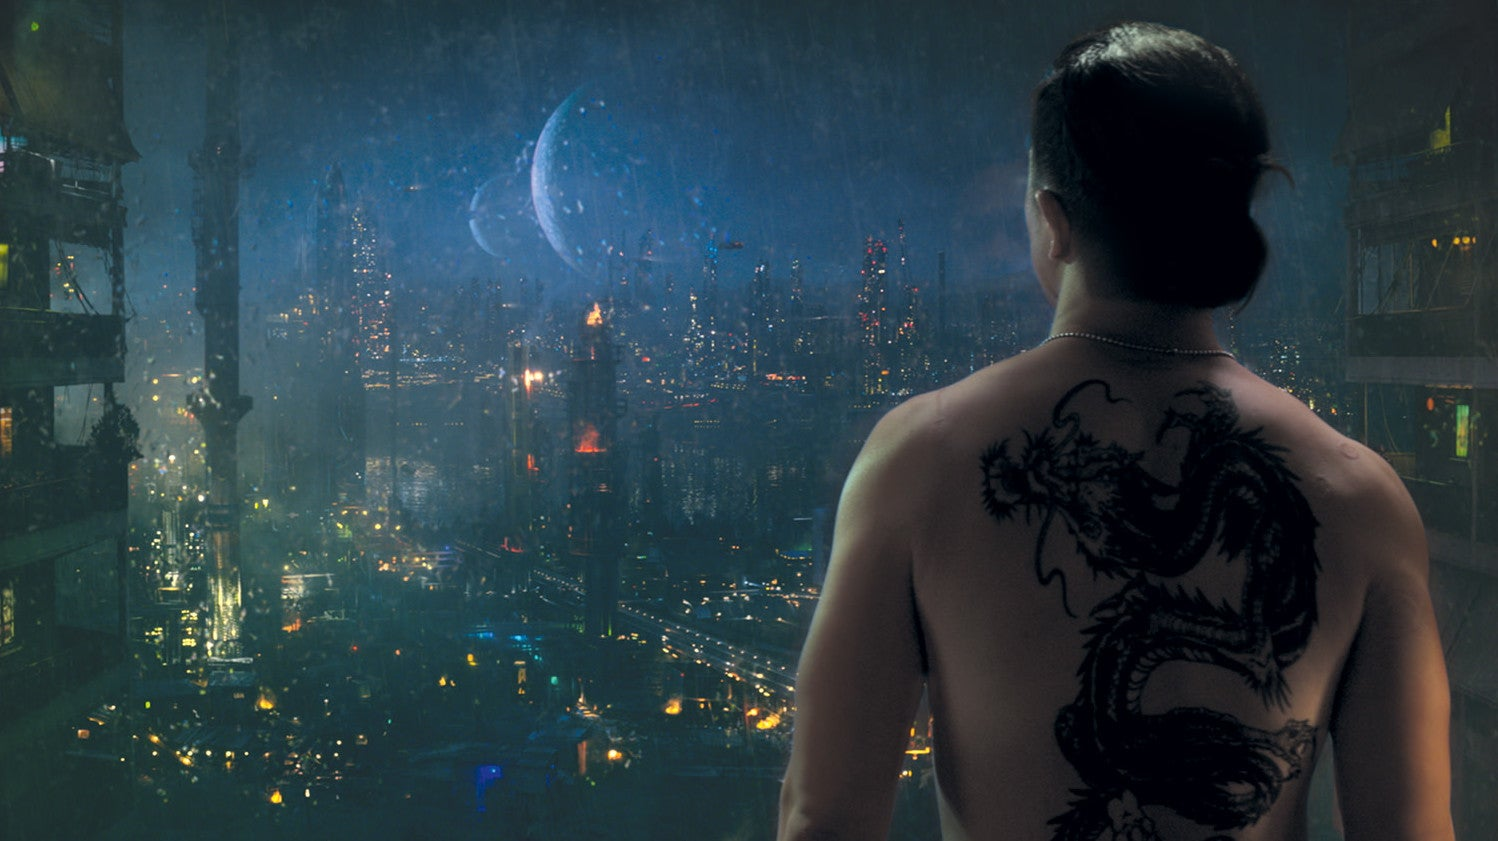 Altered Carbon Looks Stacked In An Exclusive Preview Of Netflix's Coffee Table Book